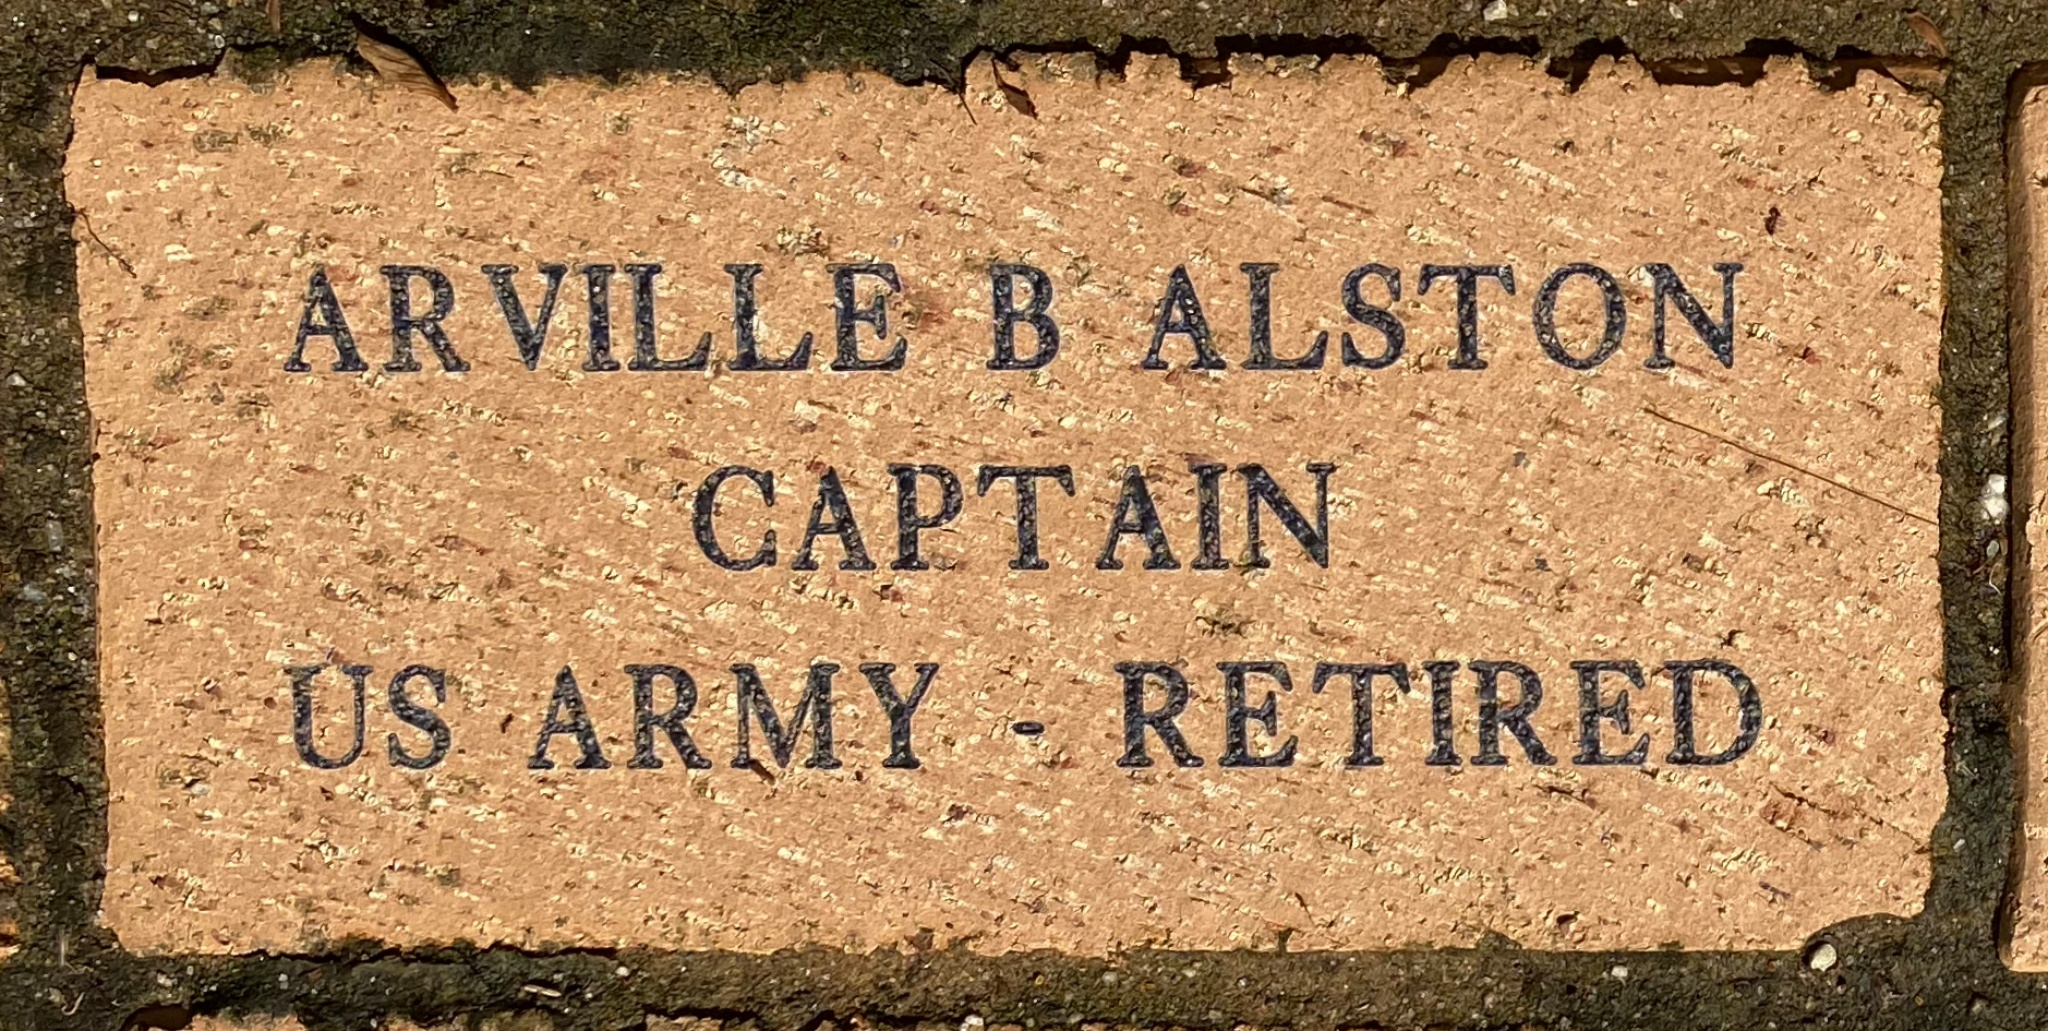 ARVILLE B ALSTON CAPTAIN US ARMY – RETIRED